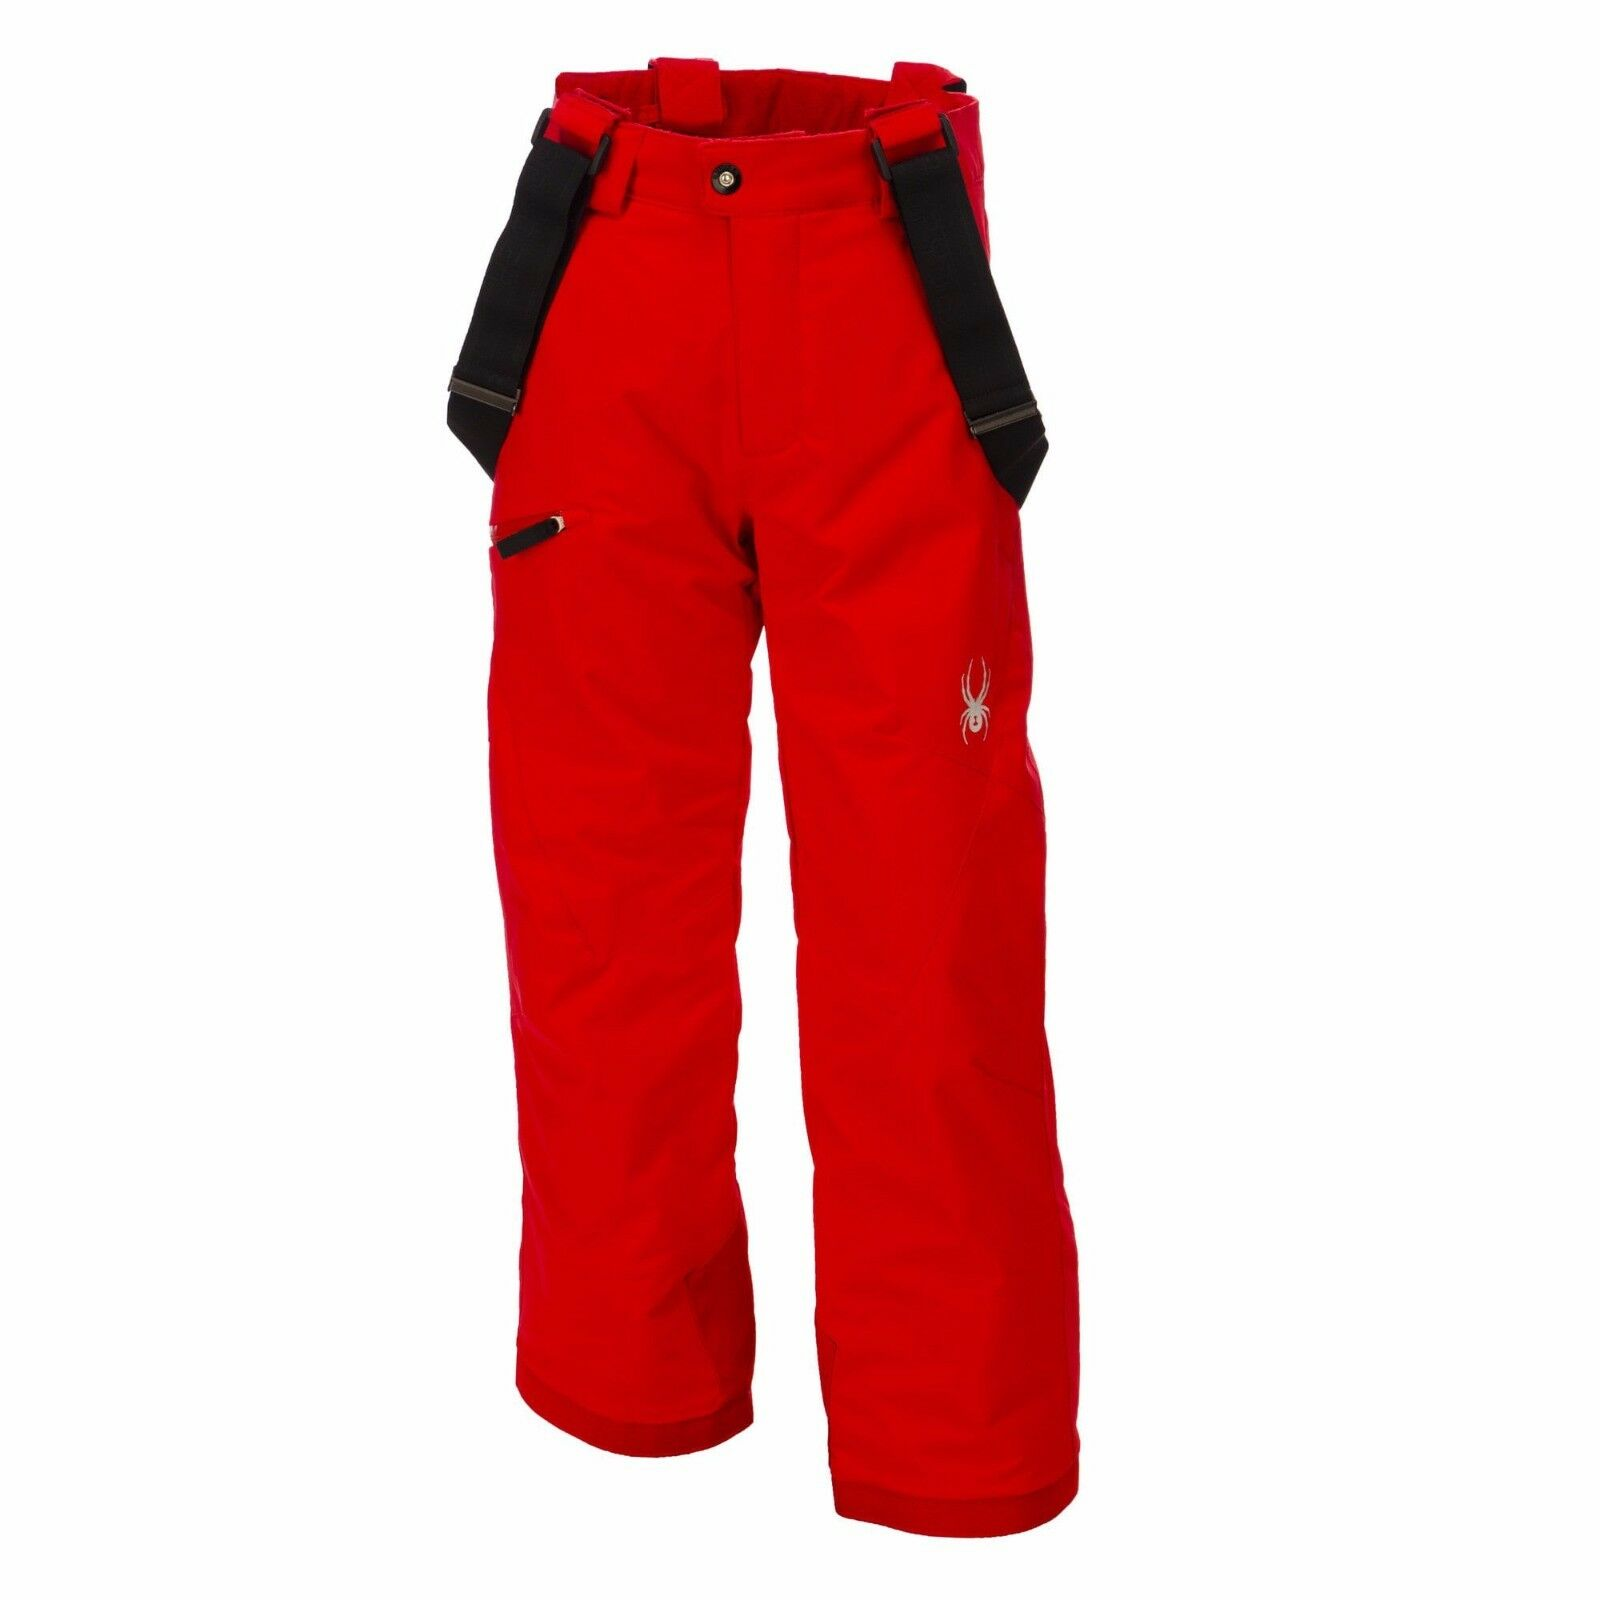 NWT Men's Spyder Propulsion Size XXLarge Red